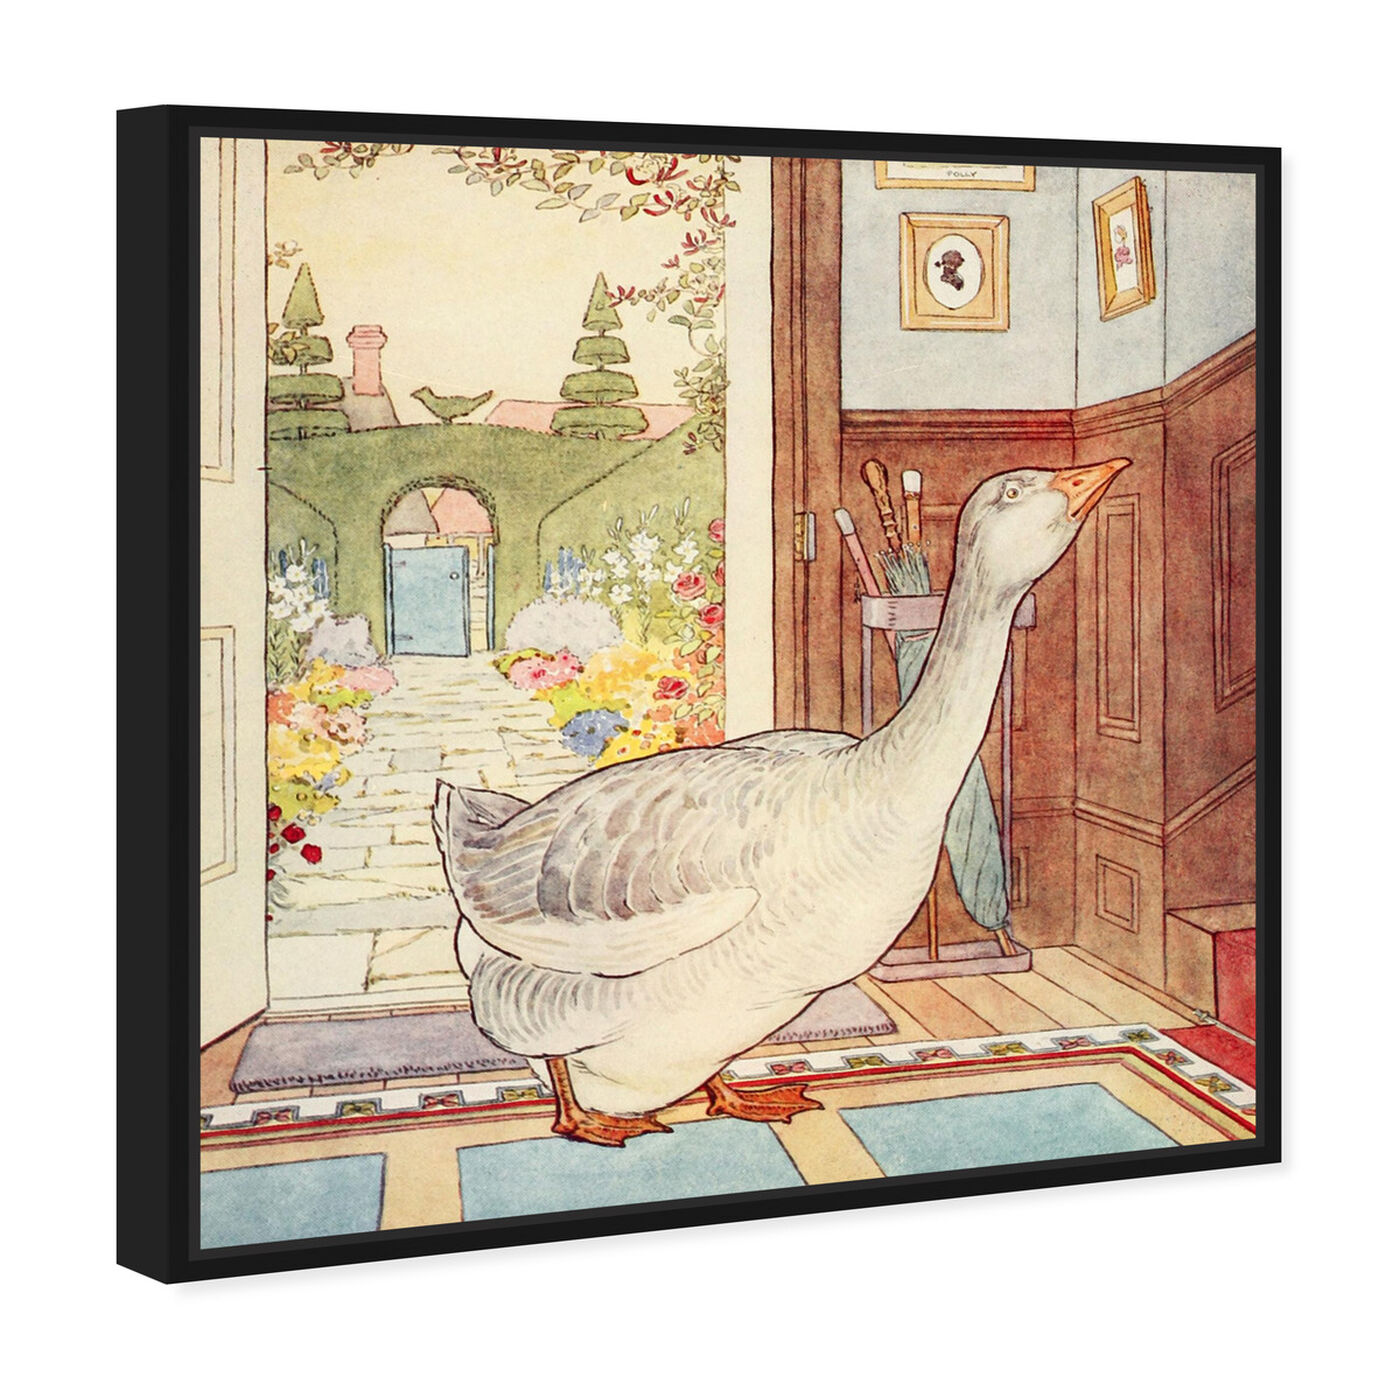 Angled view of Goosey Goosey featuring animals and birds art.